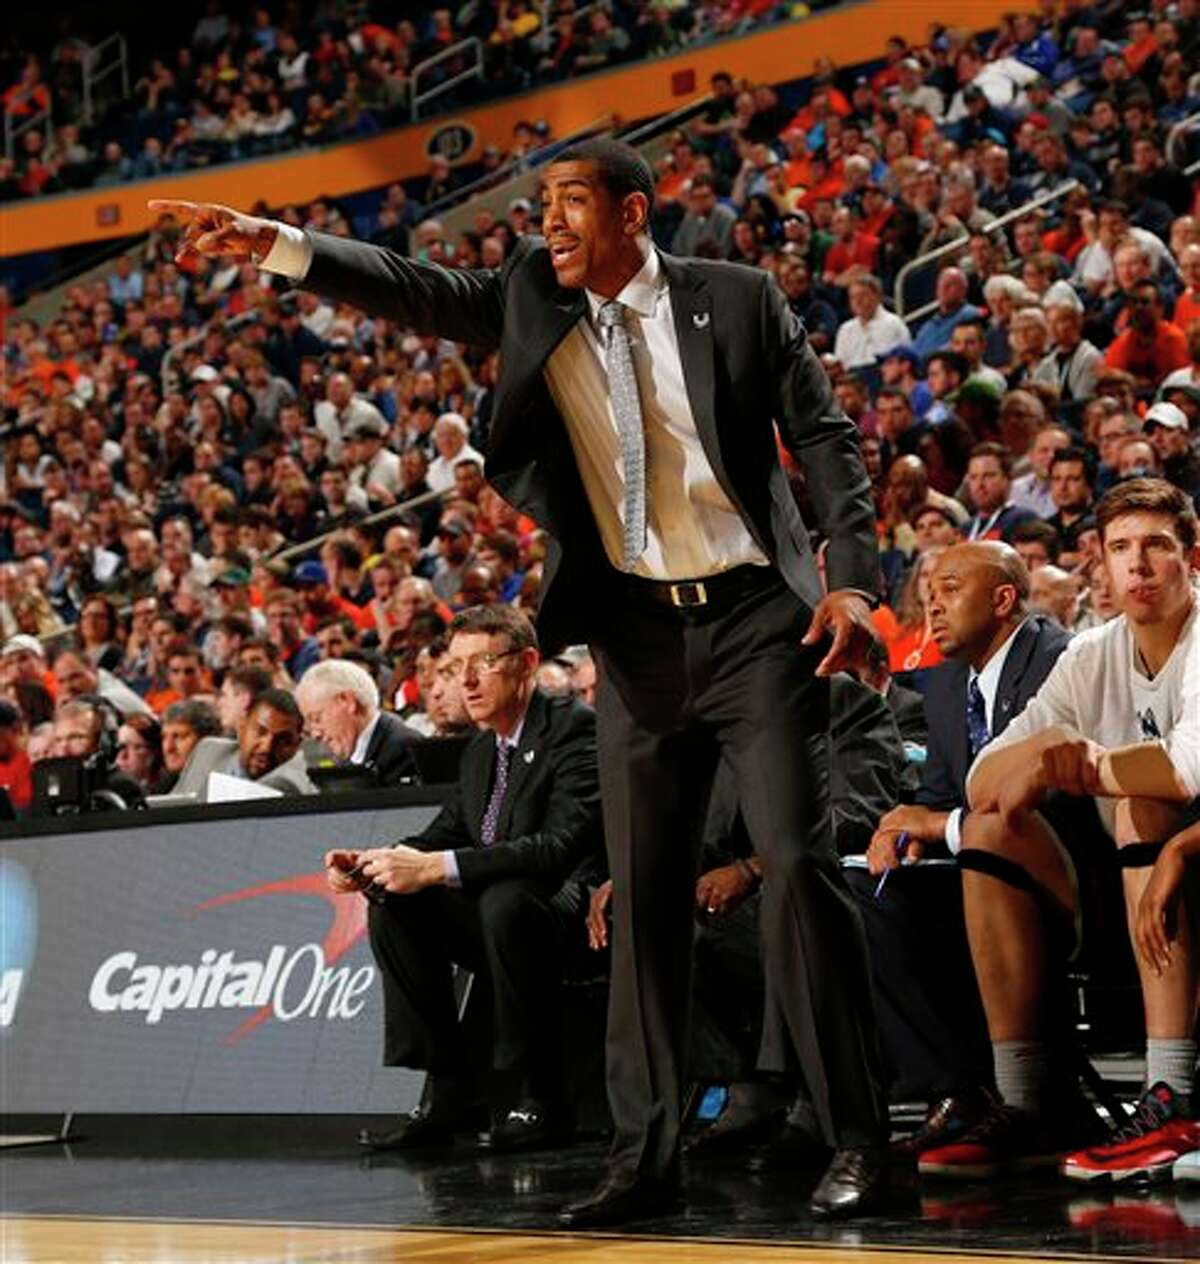 Connecticut head coach Kevin Ollie instructs his team during the second half of a third-round game in the NCAA men's college basketball tournament in Buffalo, N.Y., Saturday, March 22, 2014. Connecticut defeated Villanova, 77-65. (AP Photo/Bill Wippert)